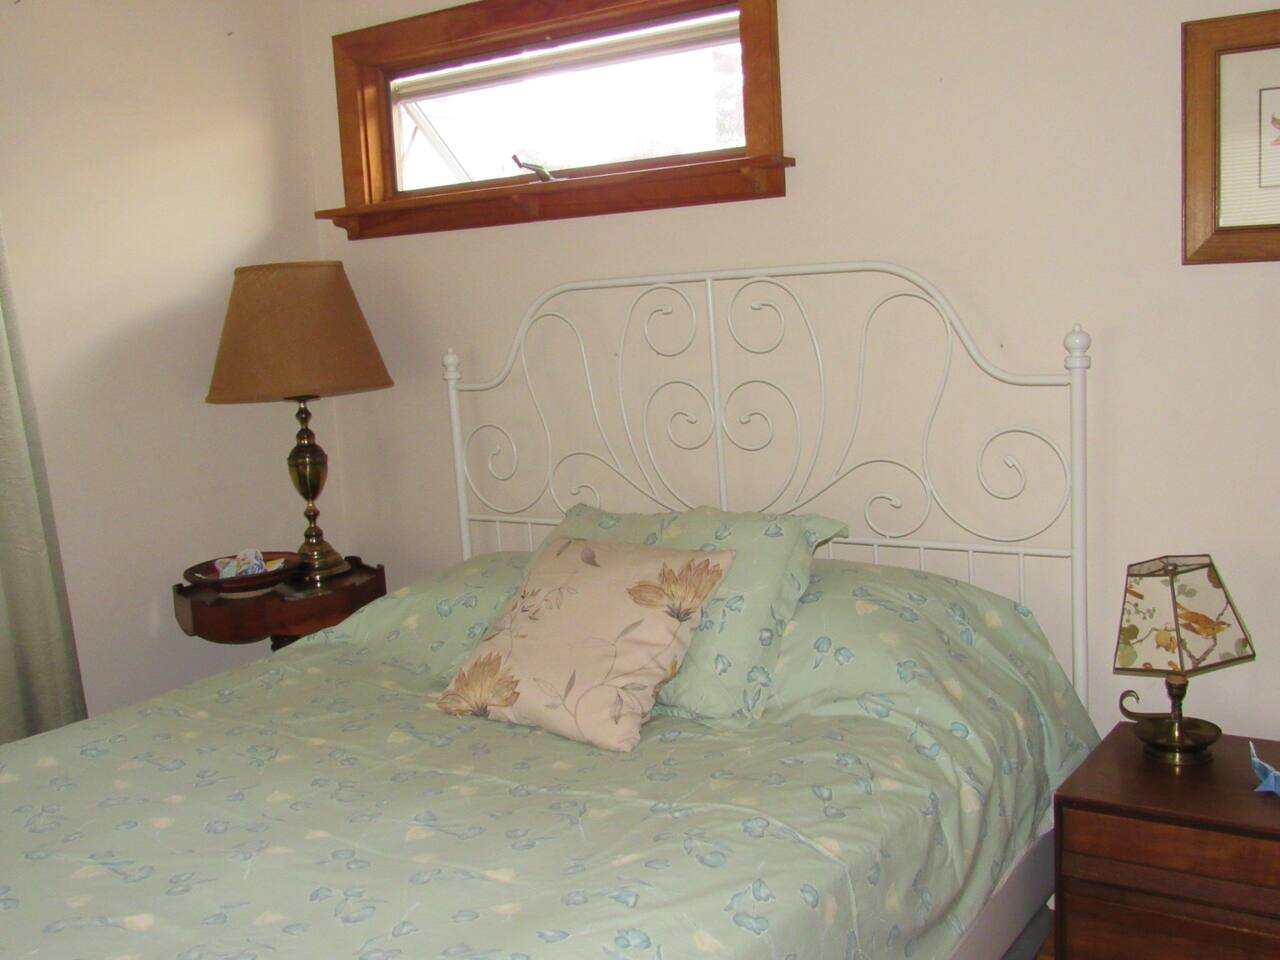 Queen bed, 2 bedside tables plus reading lamps.